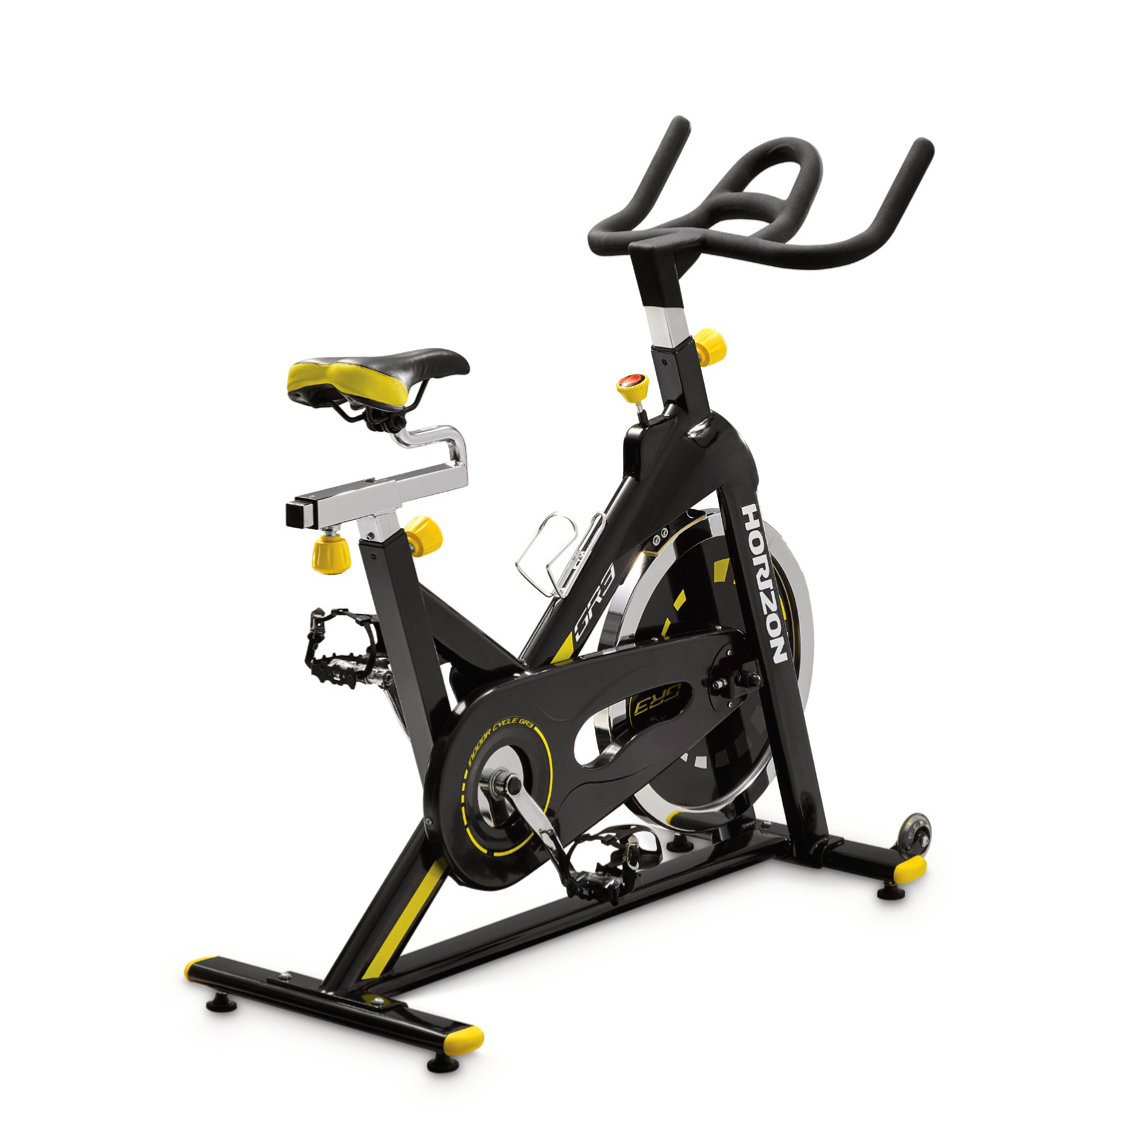 Gr home indoor cycle gym equipment south africa active africa